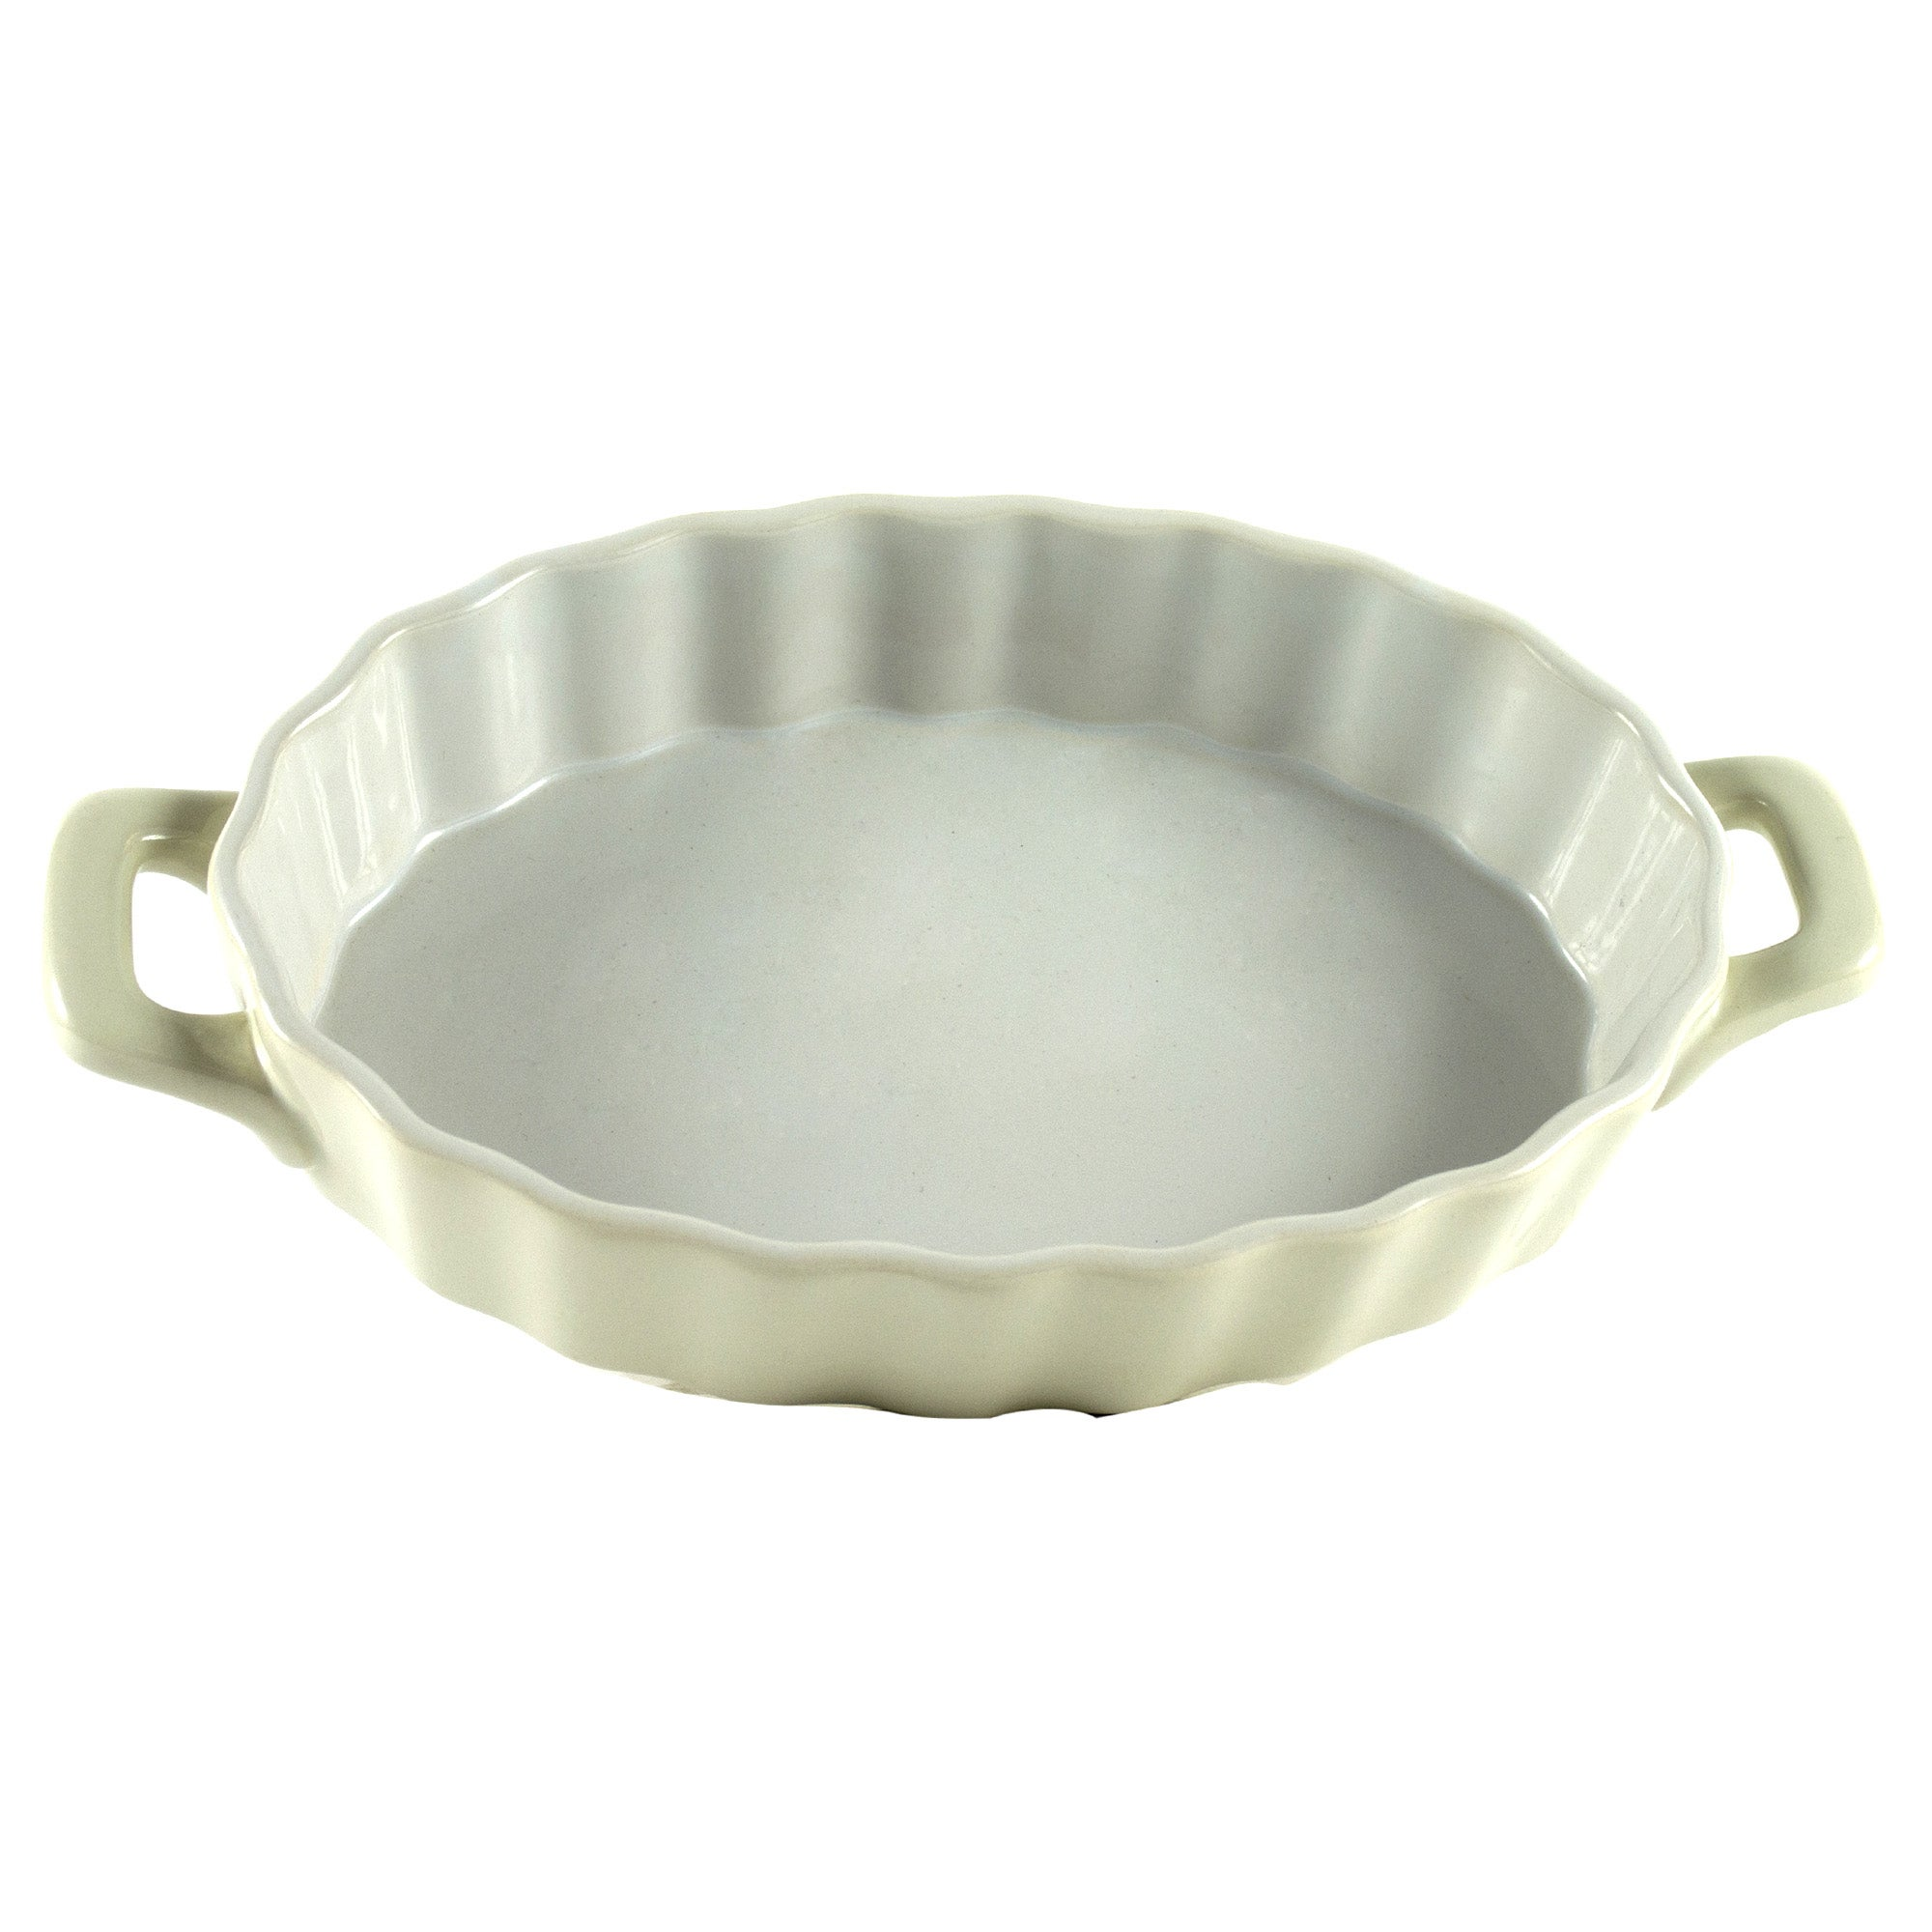 Candy Rose Collection Wavy Edged Pie Dish